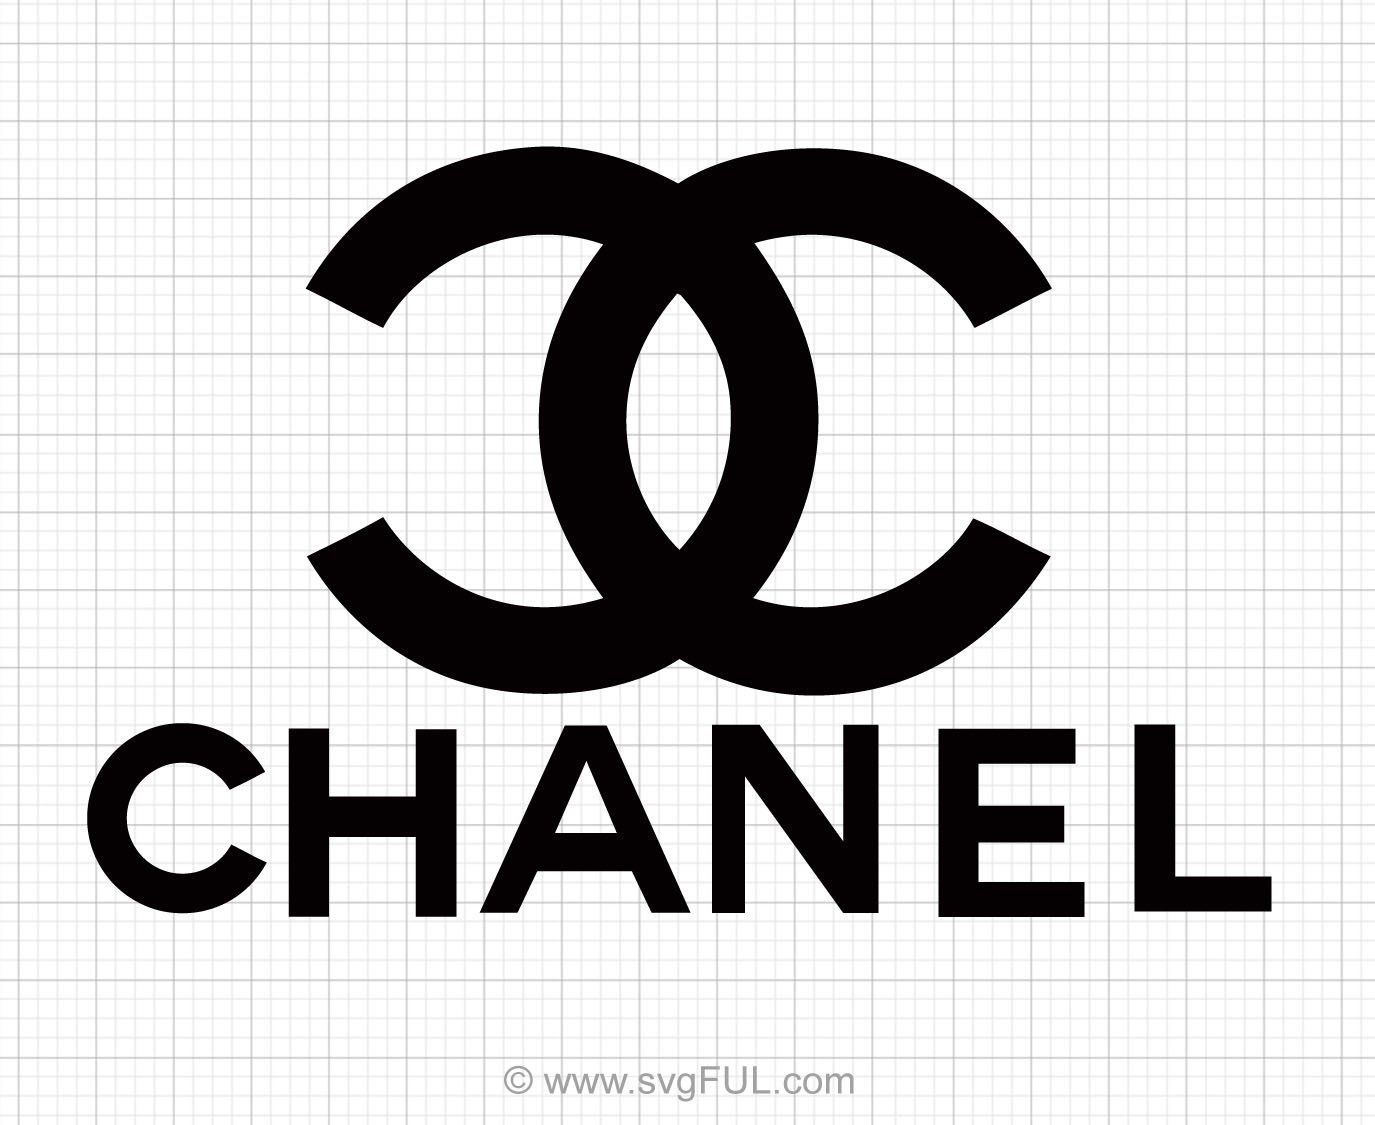 Chanel Logo Svg Printable In 2020 Chanel Logo Svg Chanel